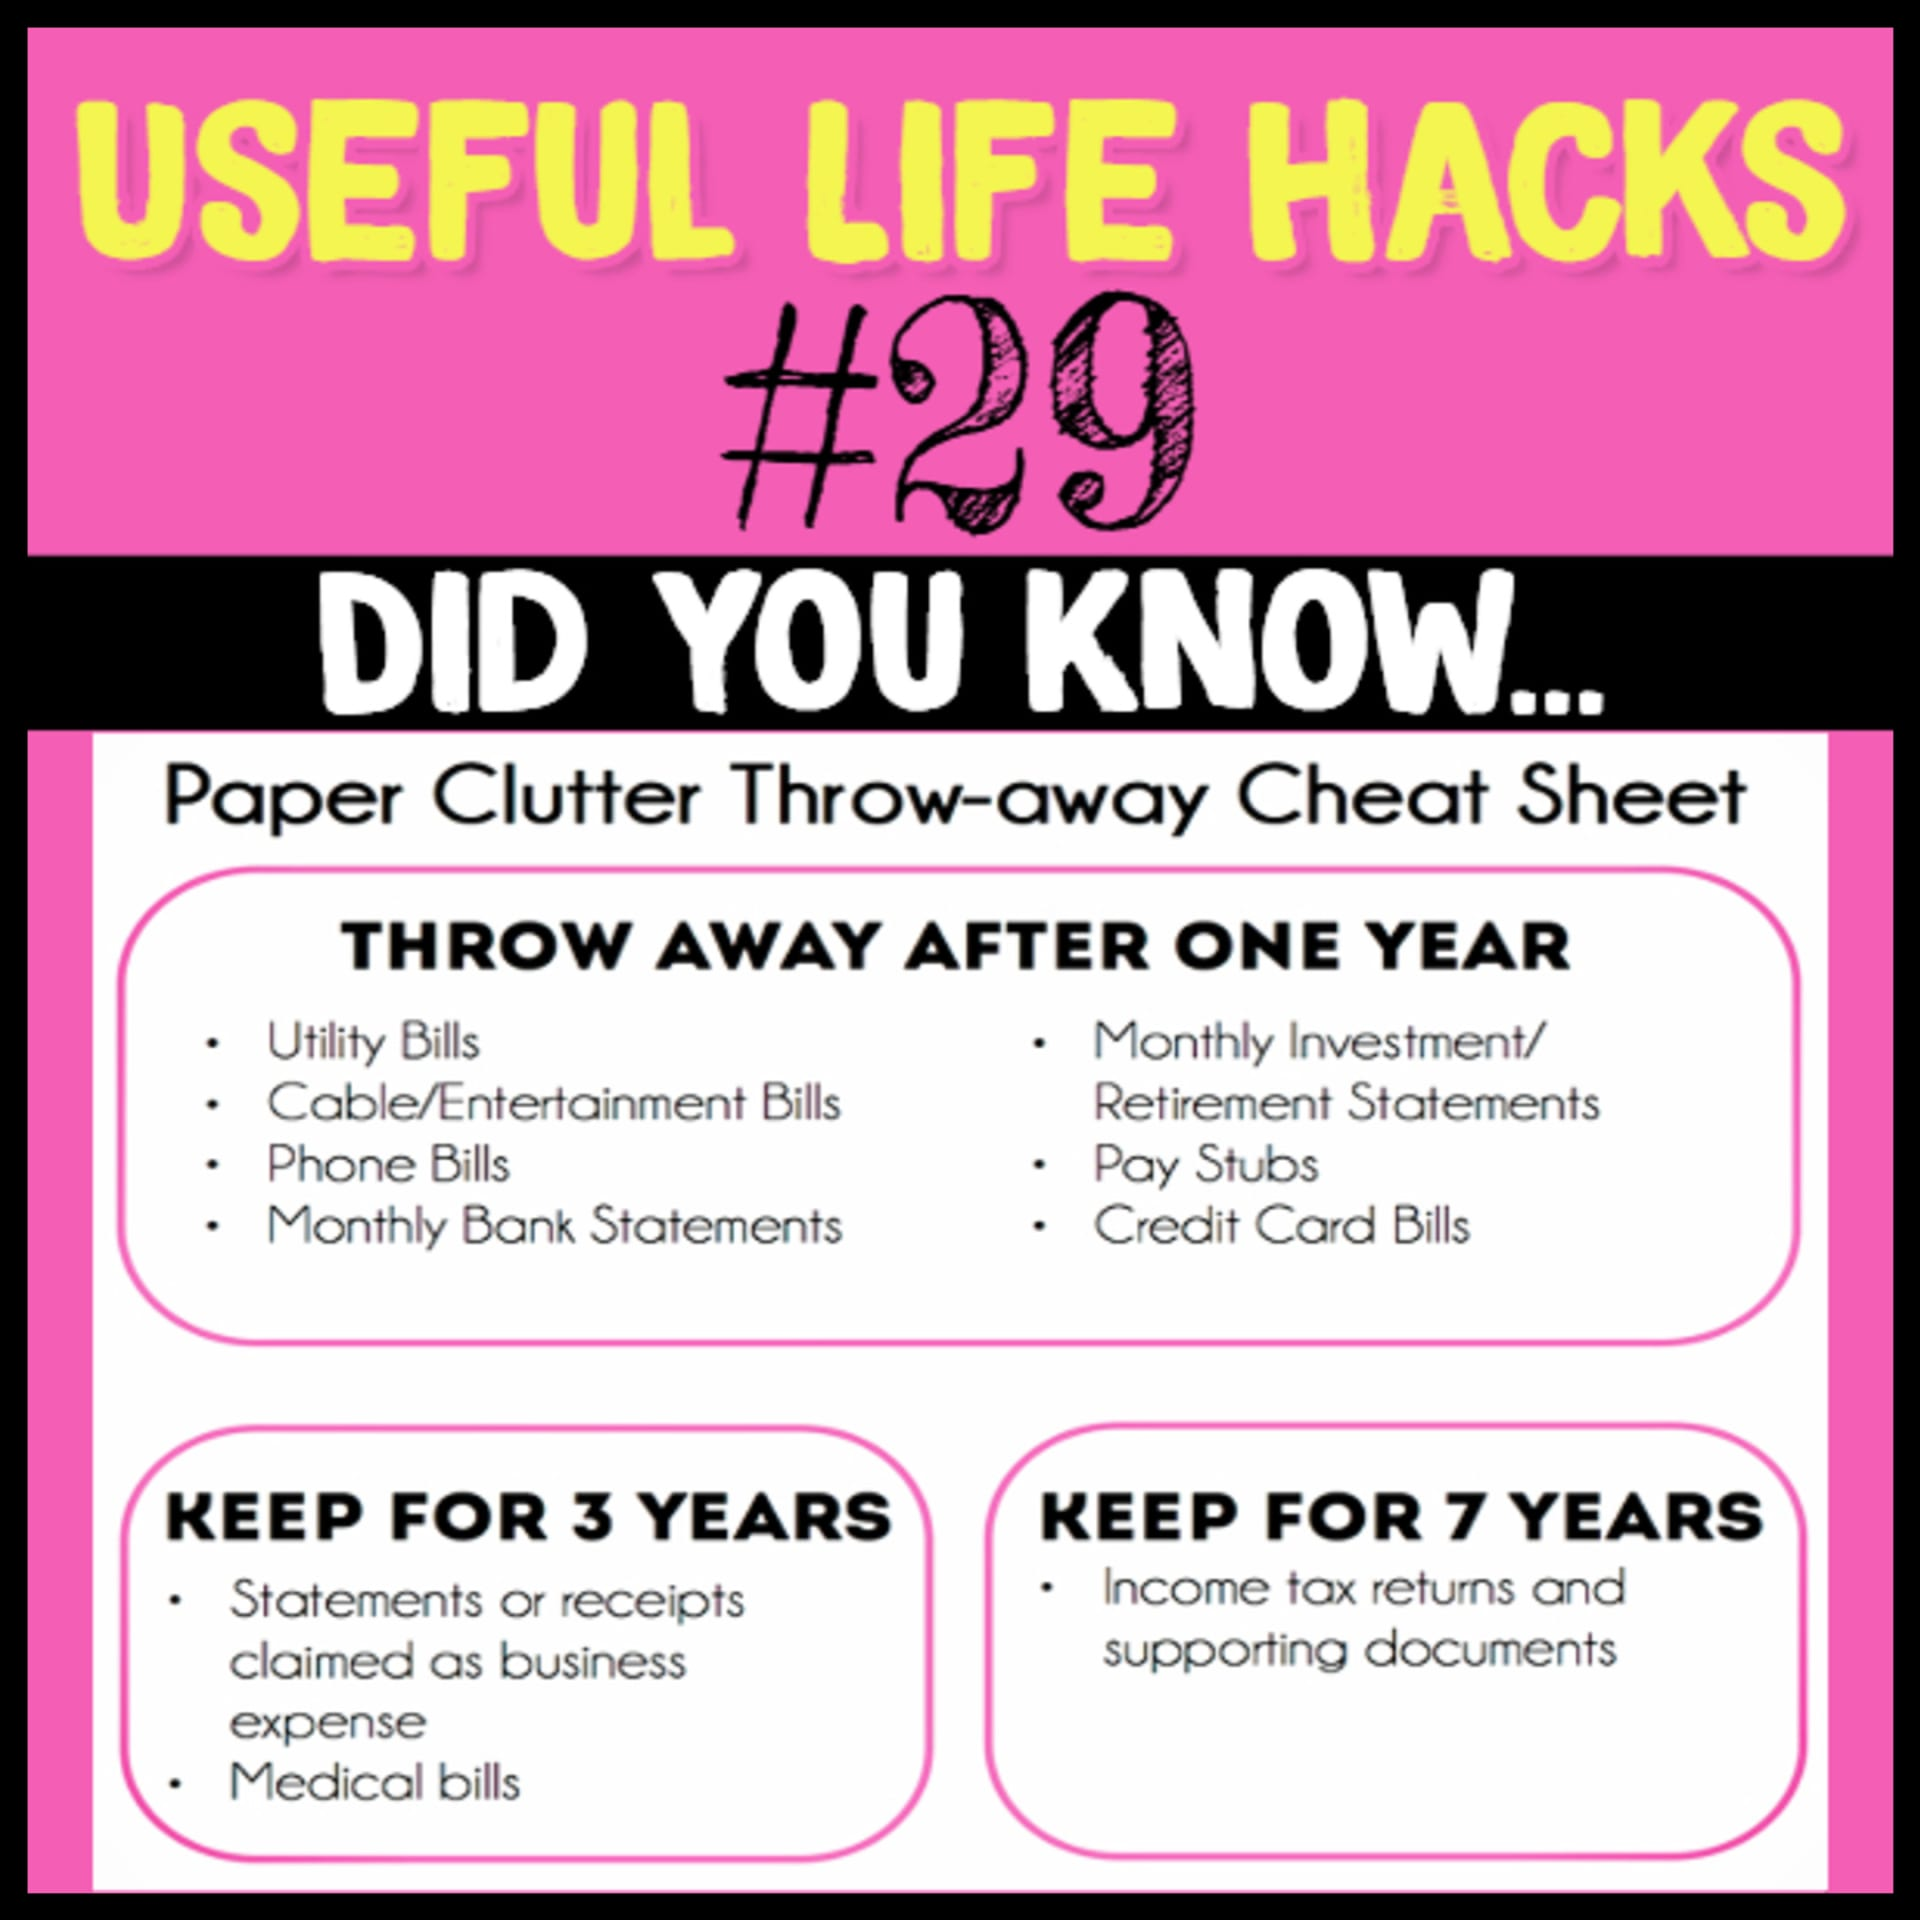 Keeping important documents tips - how long to keep documents and more paper clutter solutions - paper clutter throw-away cheat sheet and more Useful Life Hacks - MIND BLOWN!  Households life hacks and good to know hacks tips and lifehacks - these household hacks, cleaning tips & tricks are such helpful hints and life changing lifehacks